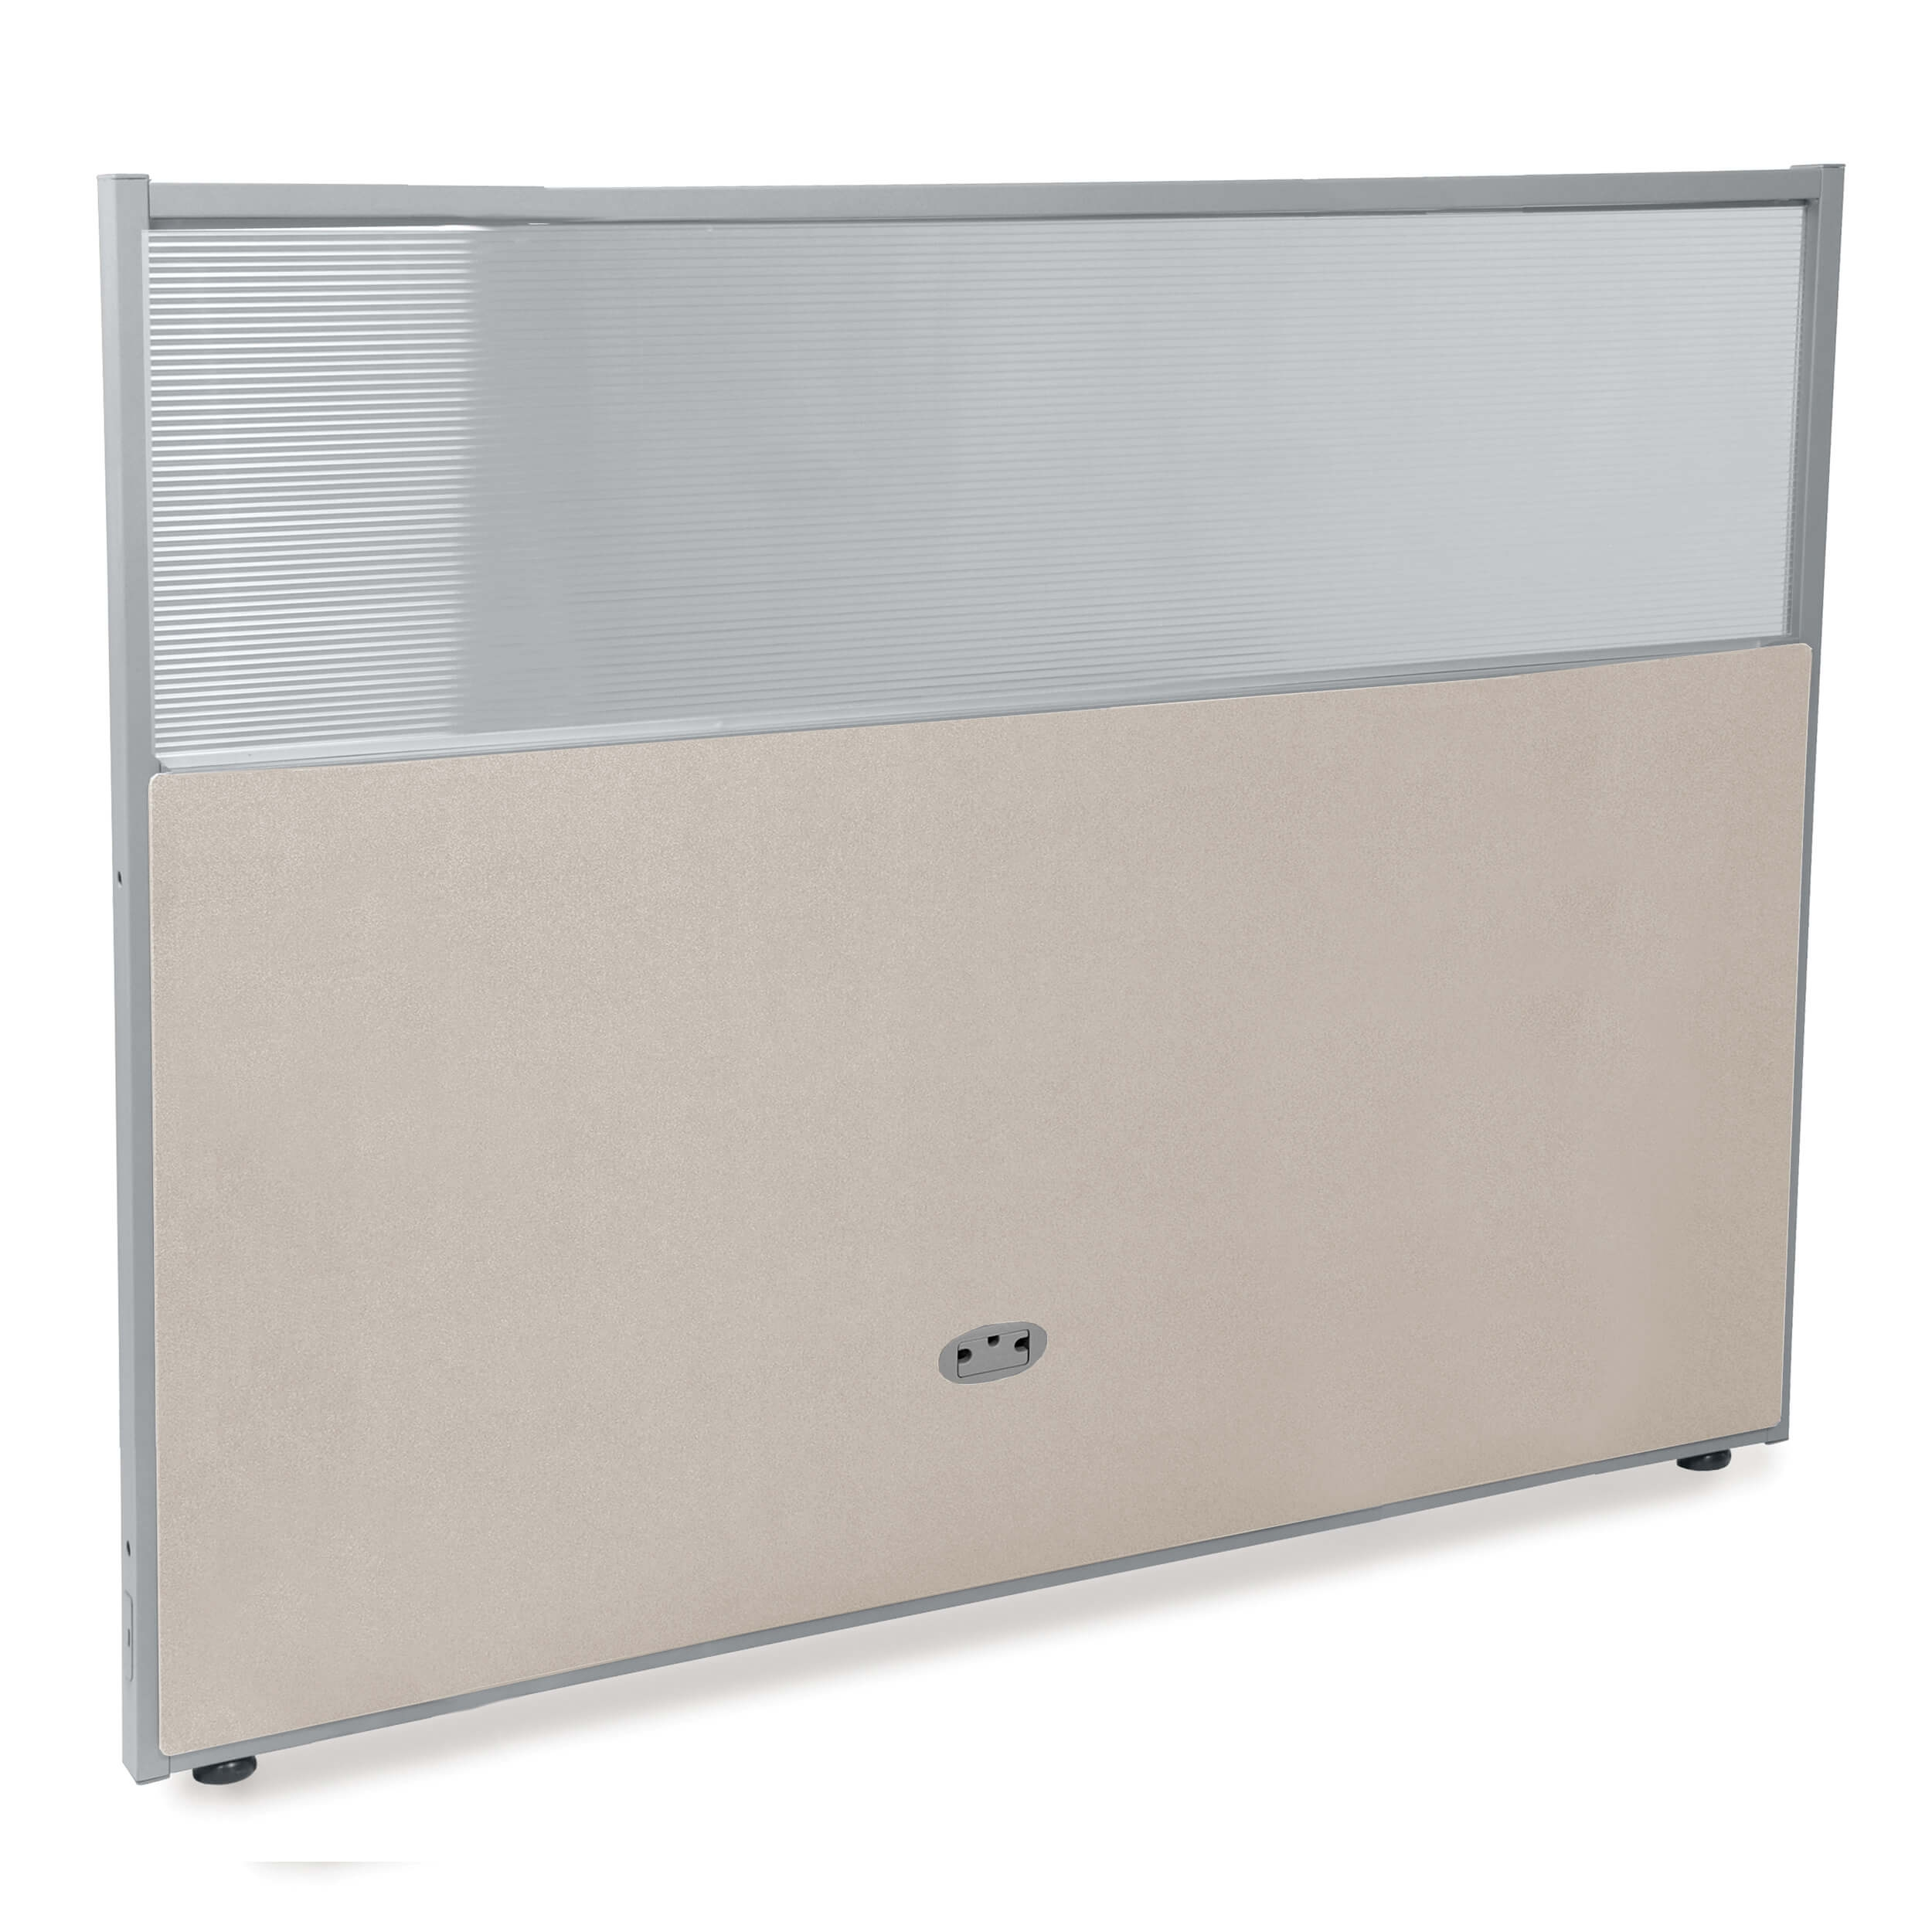 privacy-panels-portable-wall-partitions.jpg